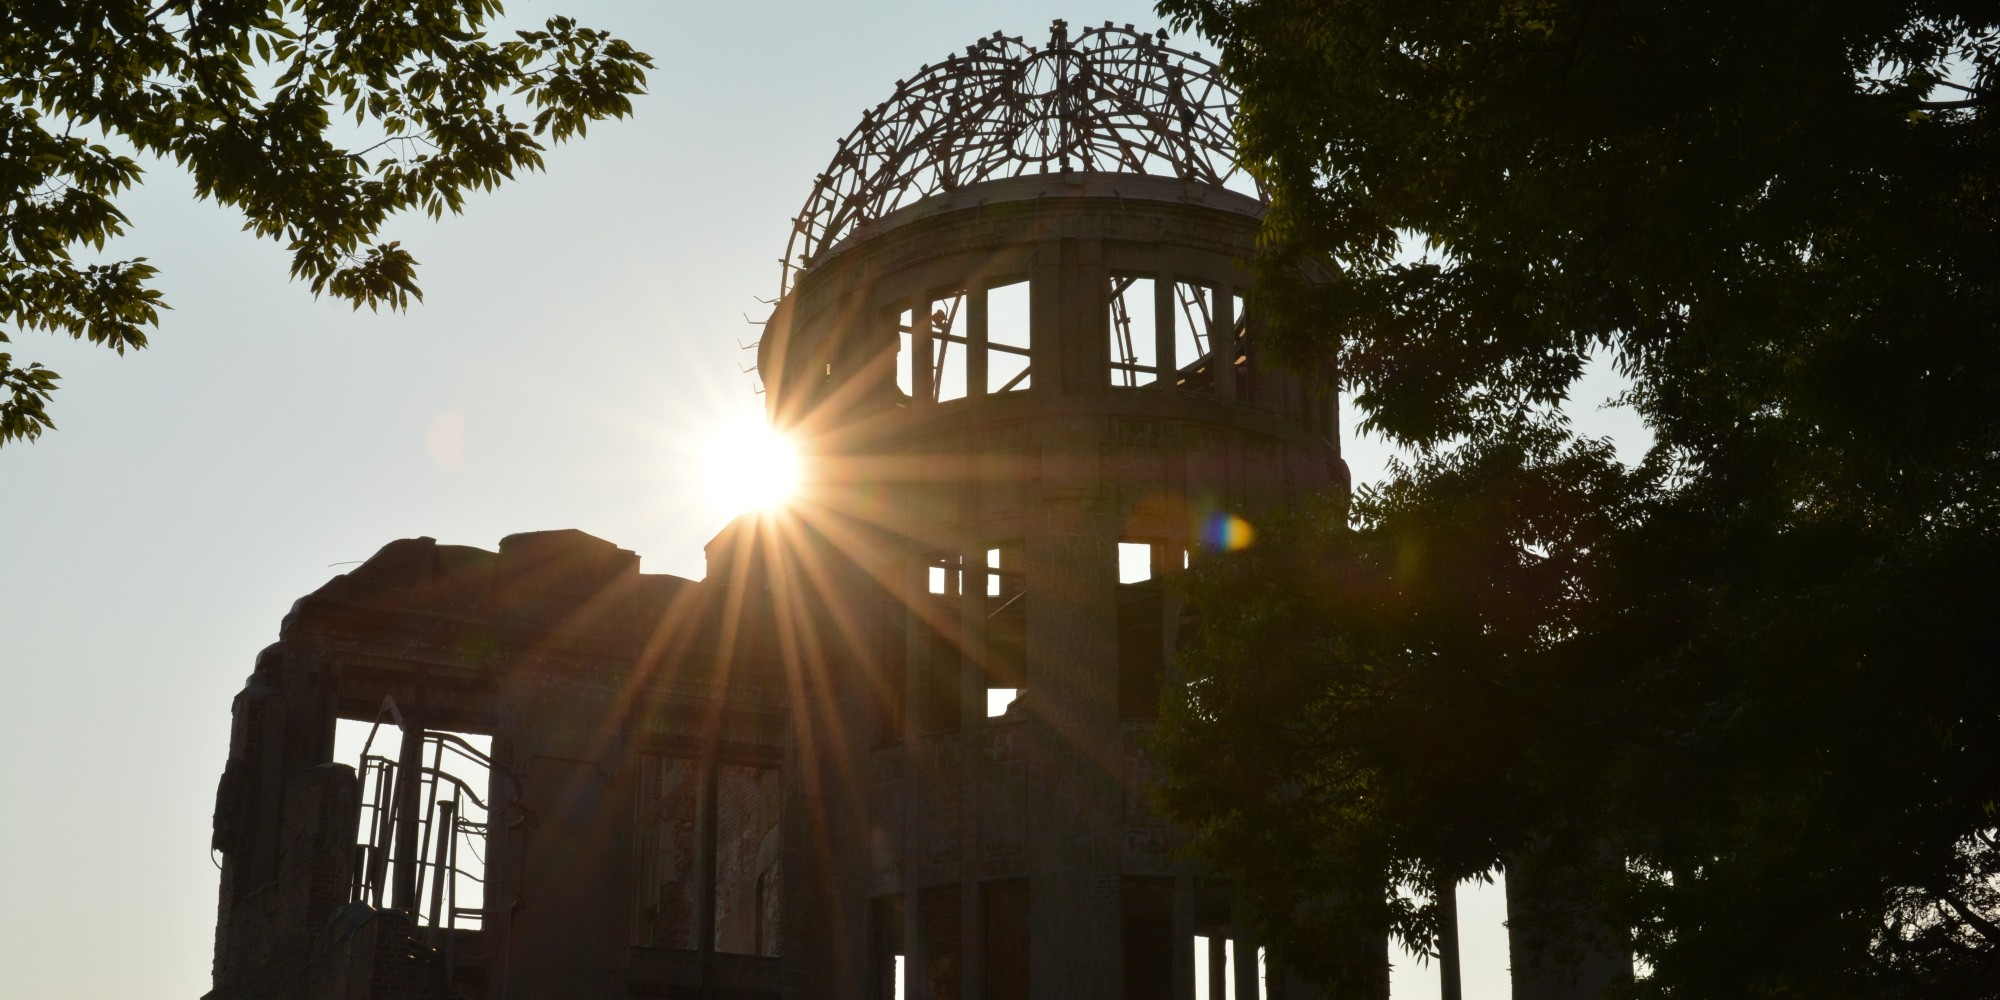 an introduction to the history of hiroshima japan On august 6, 1945, the united states dropped the atomic bomb known as little boy on hiroshima, japan three days later, they dropped another atomic bomb, this time on.